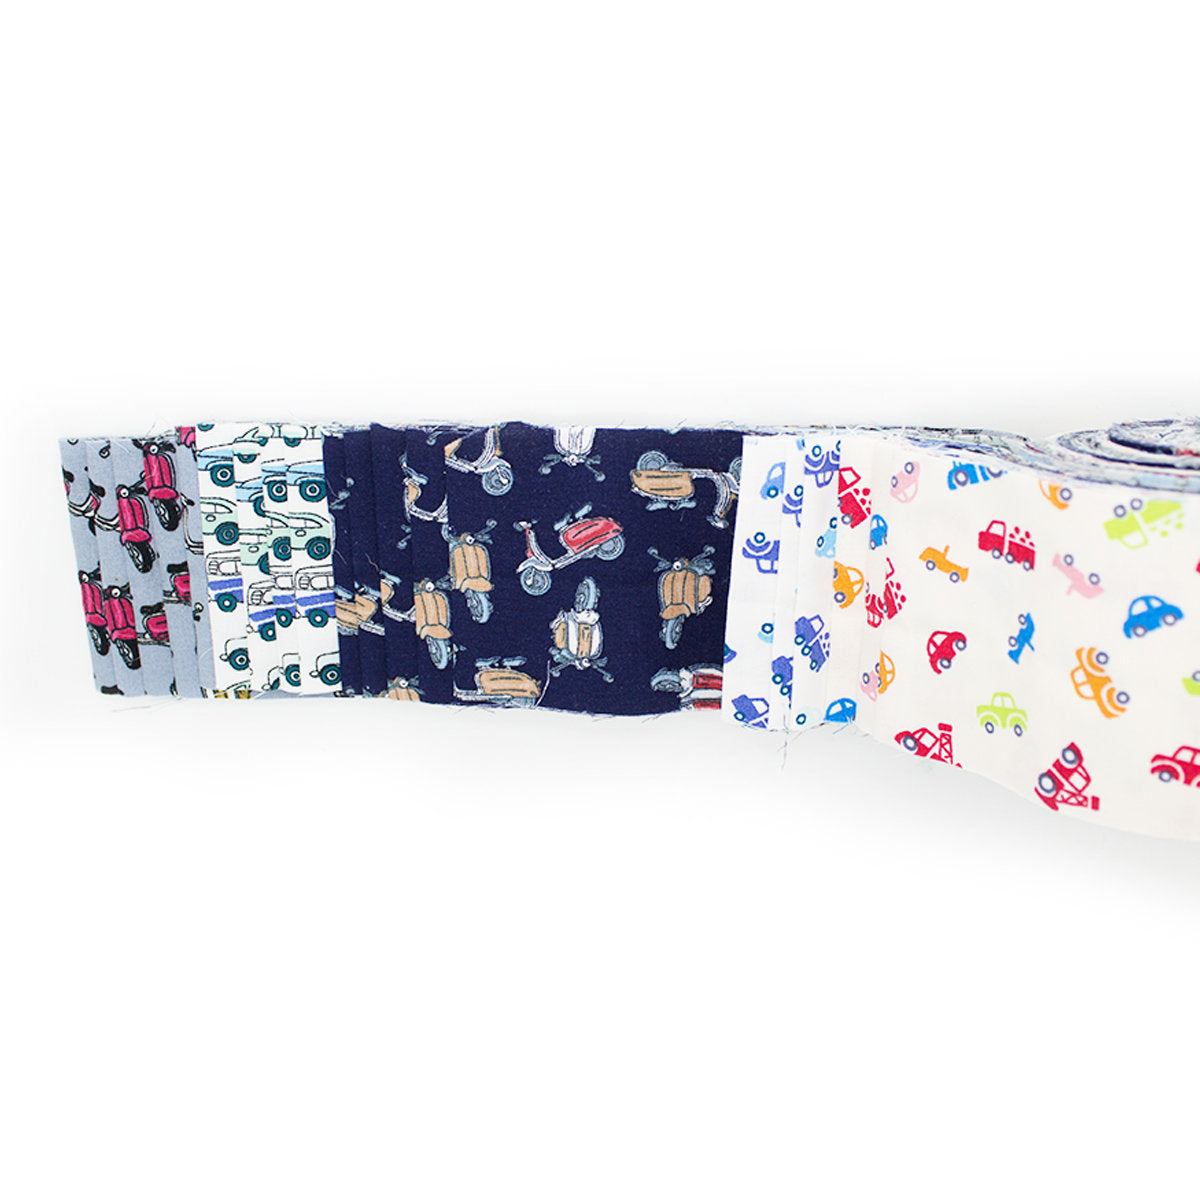 Vehicles Fabric Roll /Jelly Roll. 20 piece fabric roll 2.5 x 42